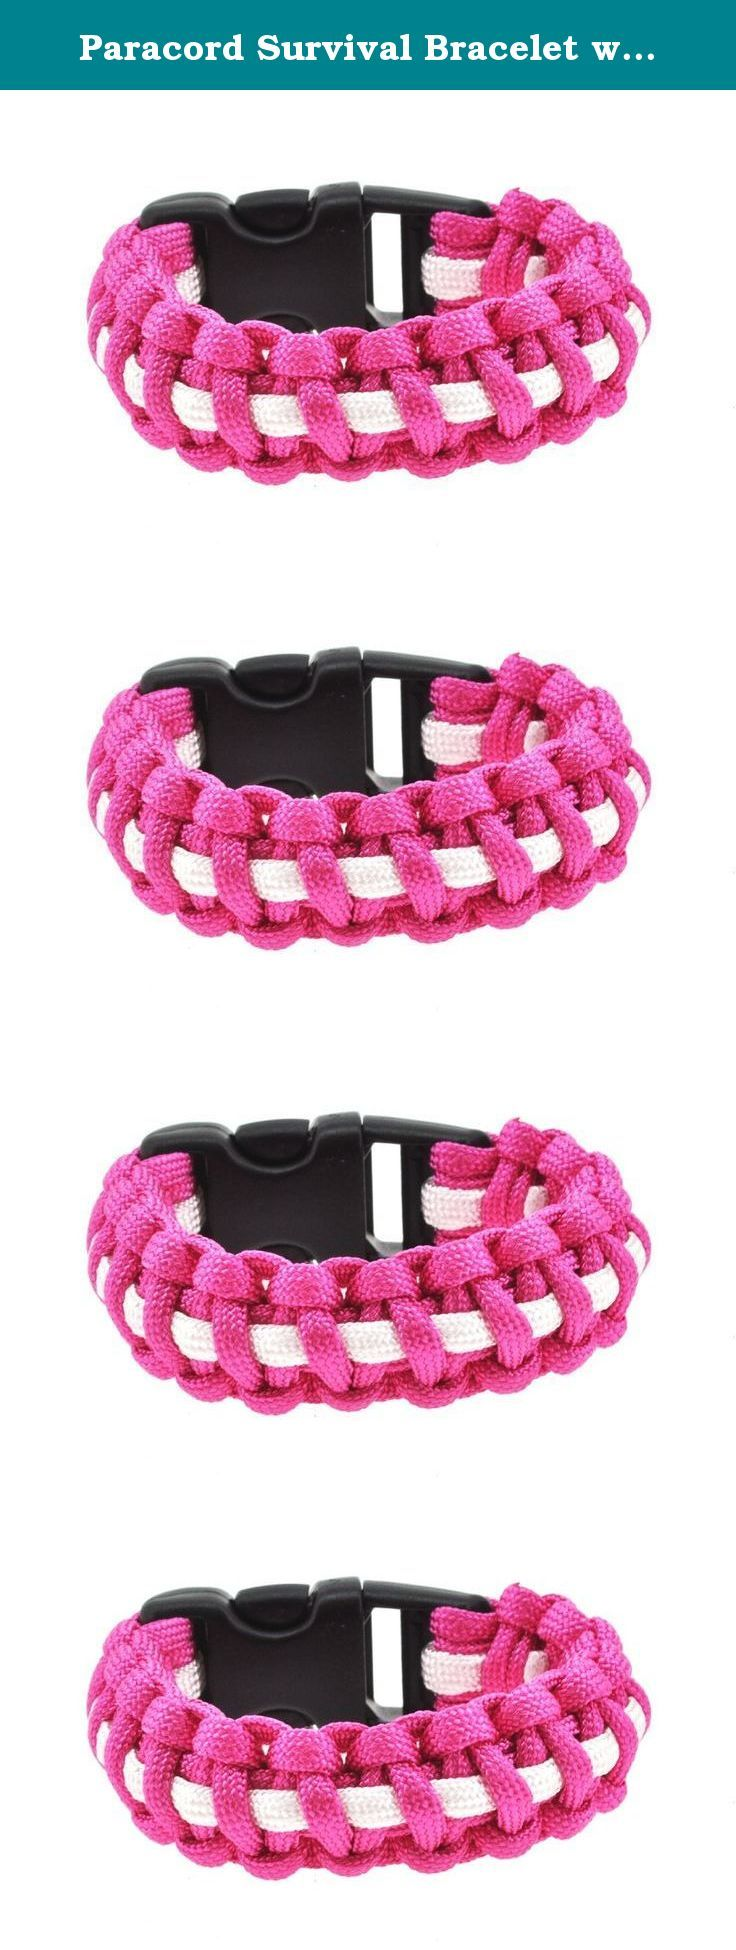 Paracord Survival Bracelet with Strong Buckle, 7 Inches (Pink and White). This paracord survival bracelet is functional and stylish. Although paracord bracelets are currently in style, many are clueless about the many uses of these fashionable bracelets. Survival bracelets can be used in emergency situations, for camping, to set traps, to build a makeshift tent, or to climb up or down hills. Each survival bracelet unravels into a long rope that can withstand a lot of force. Each bracelet…